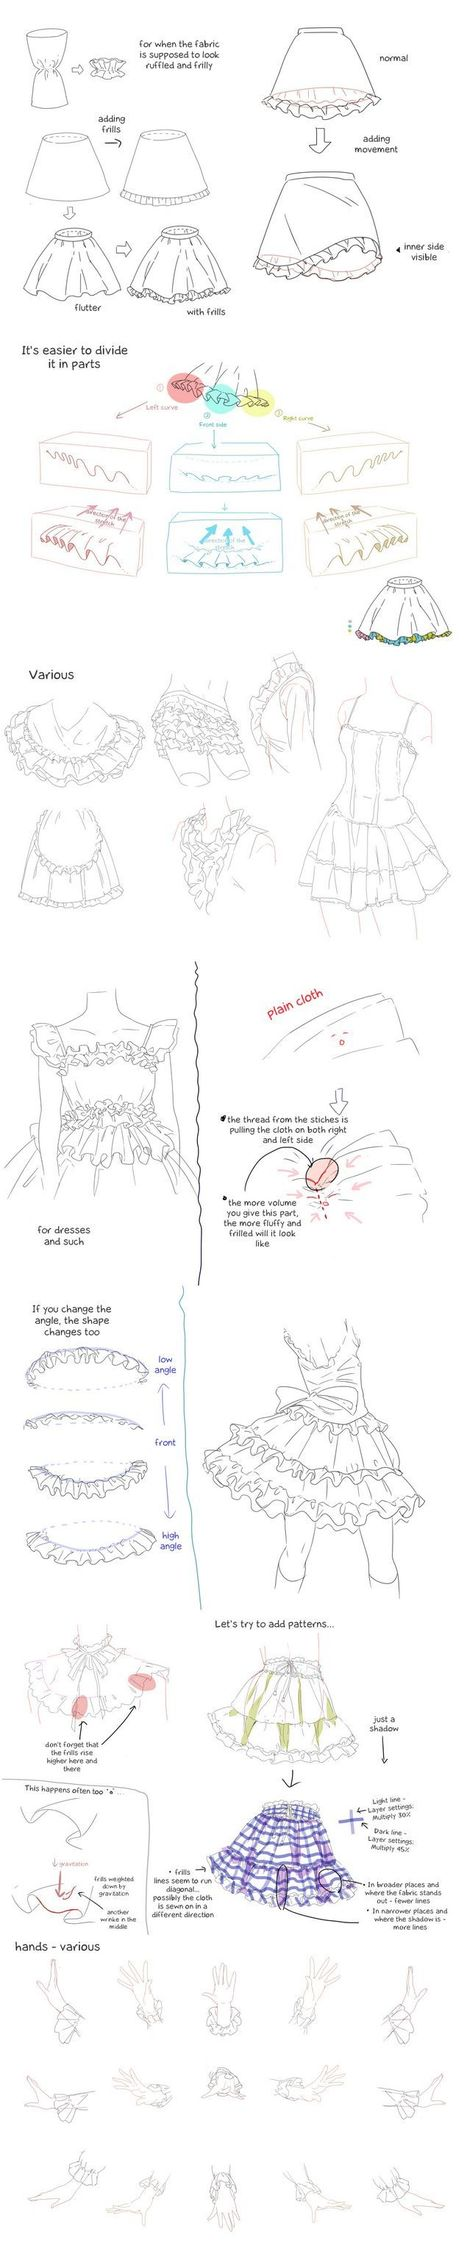 Clothing drawing reference guide